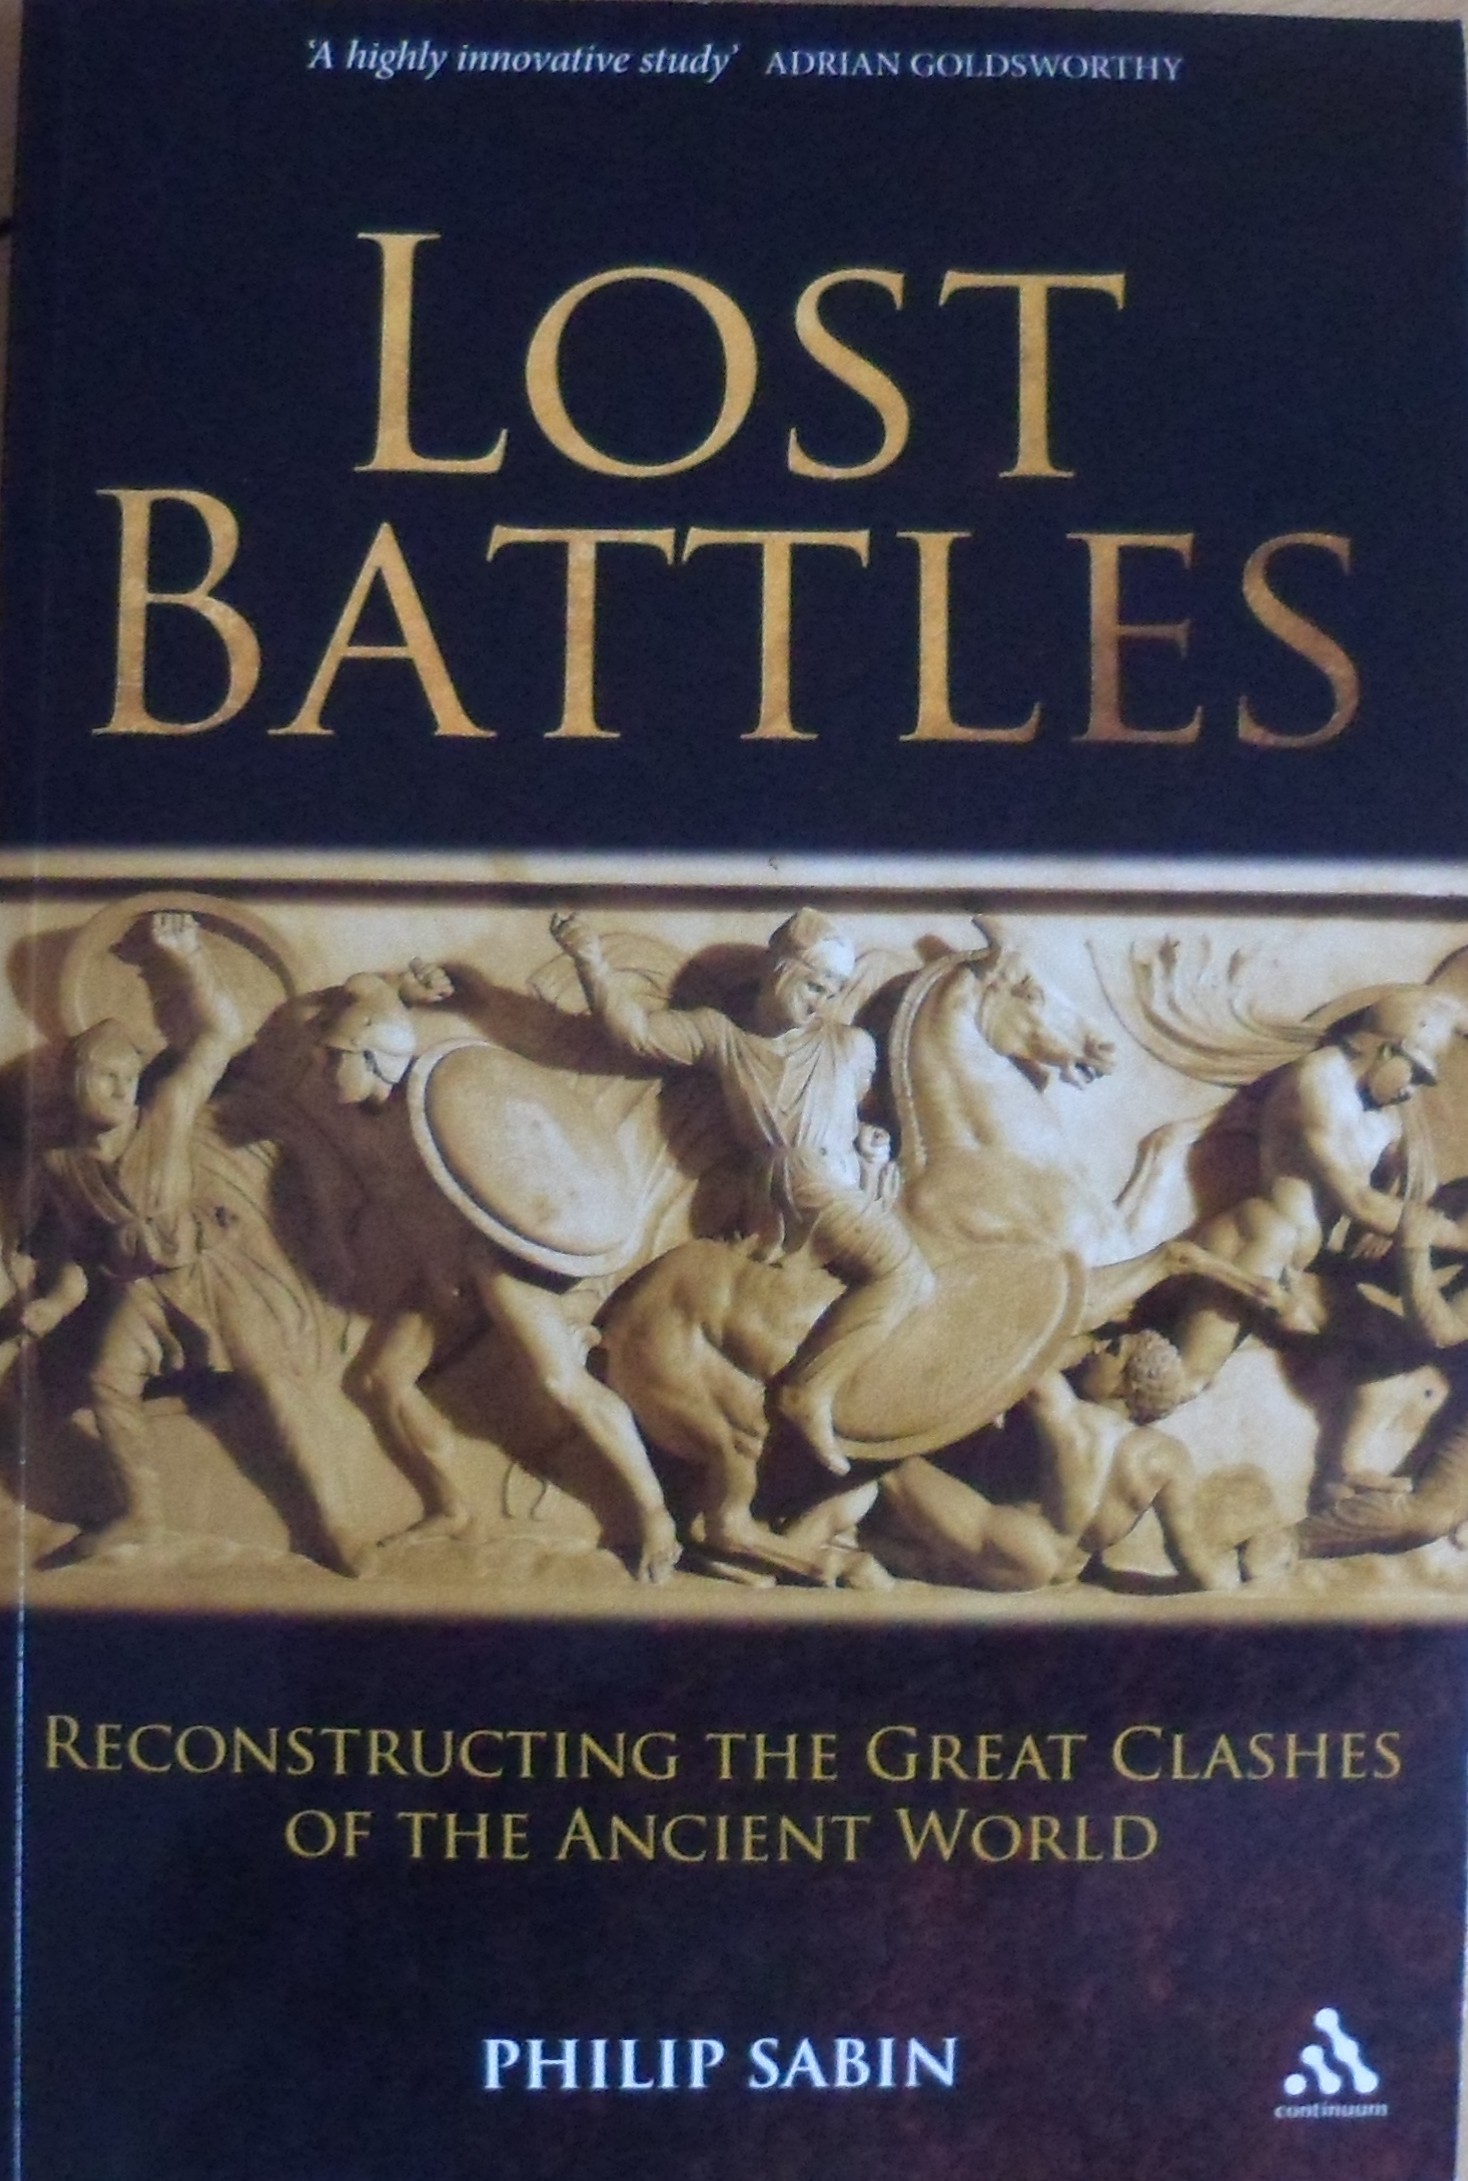 """The cover of """"lost battles"""" by Philip Sabin"""